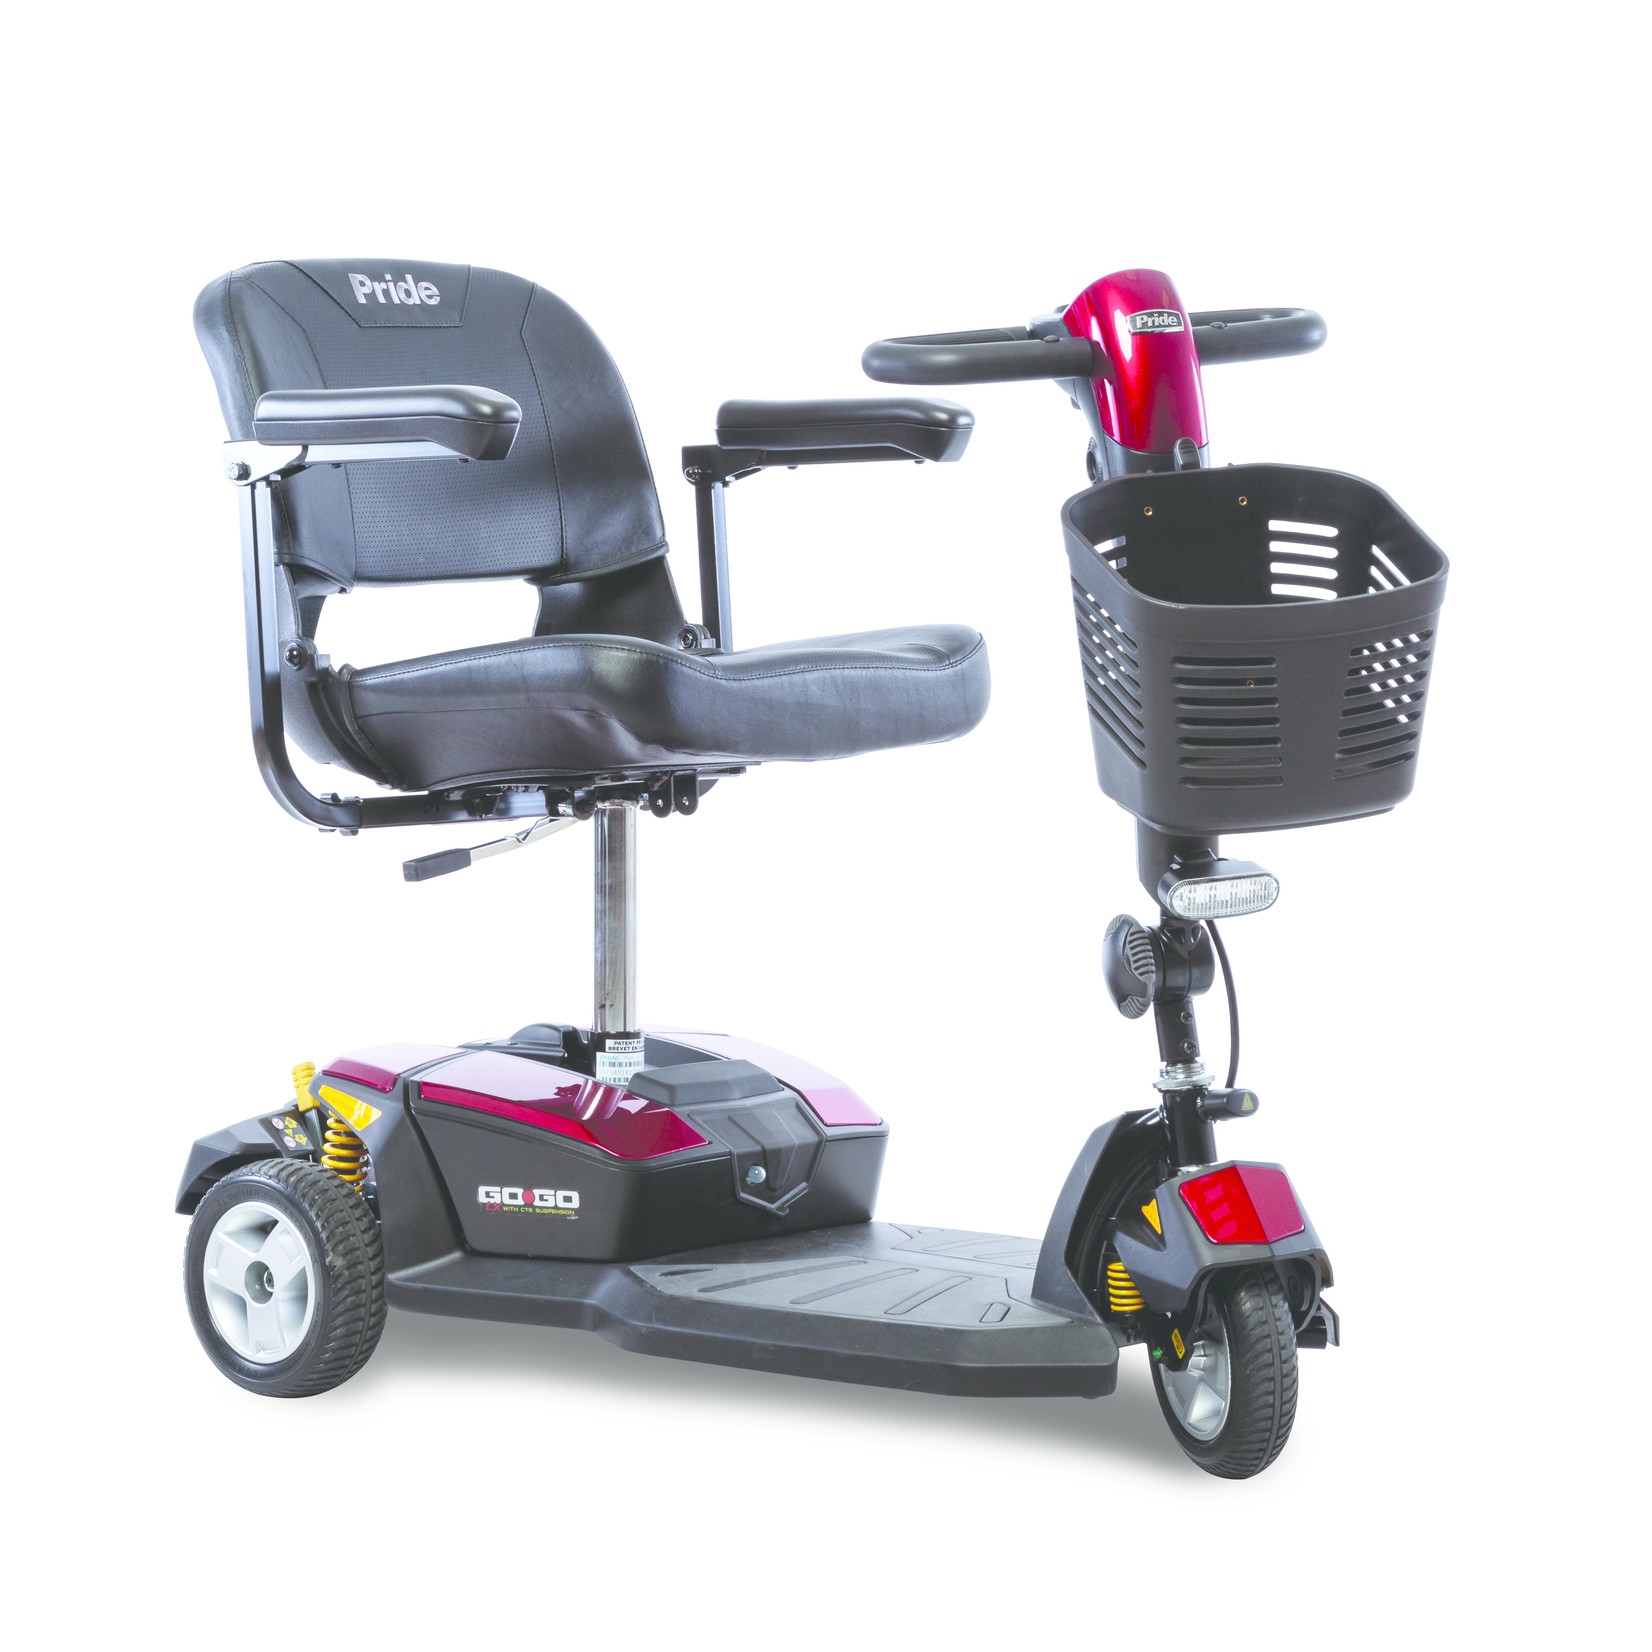 Pride Go-Go LX with CTS Suspension 3-Wheel Scooters 12AH Battery